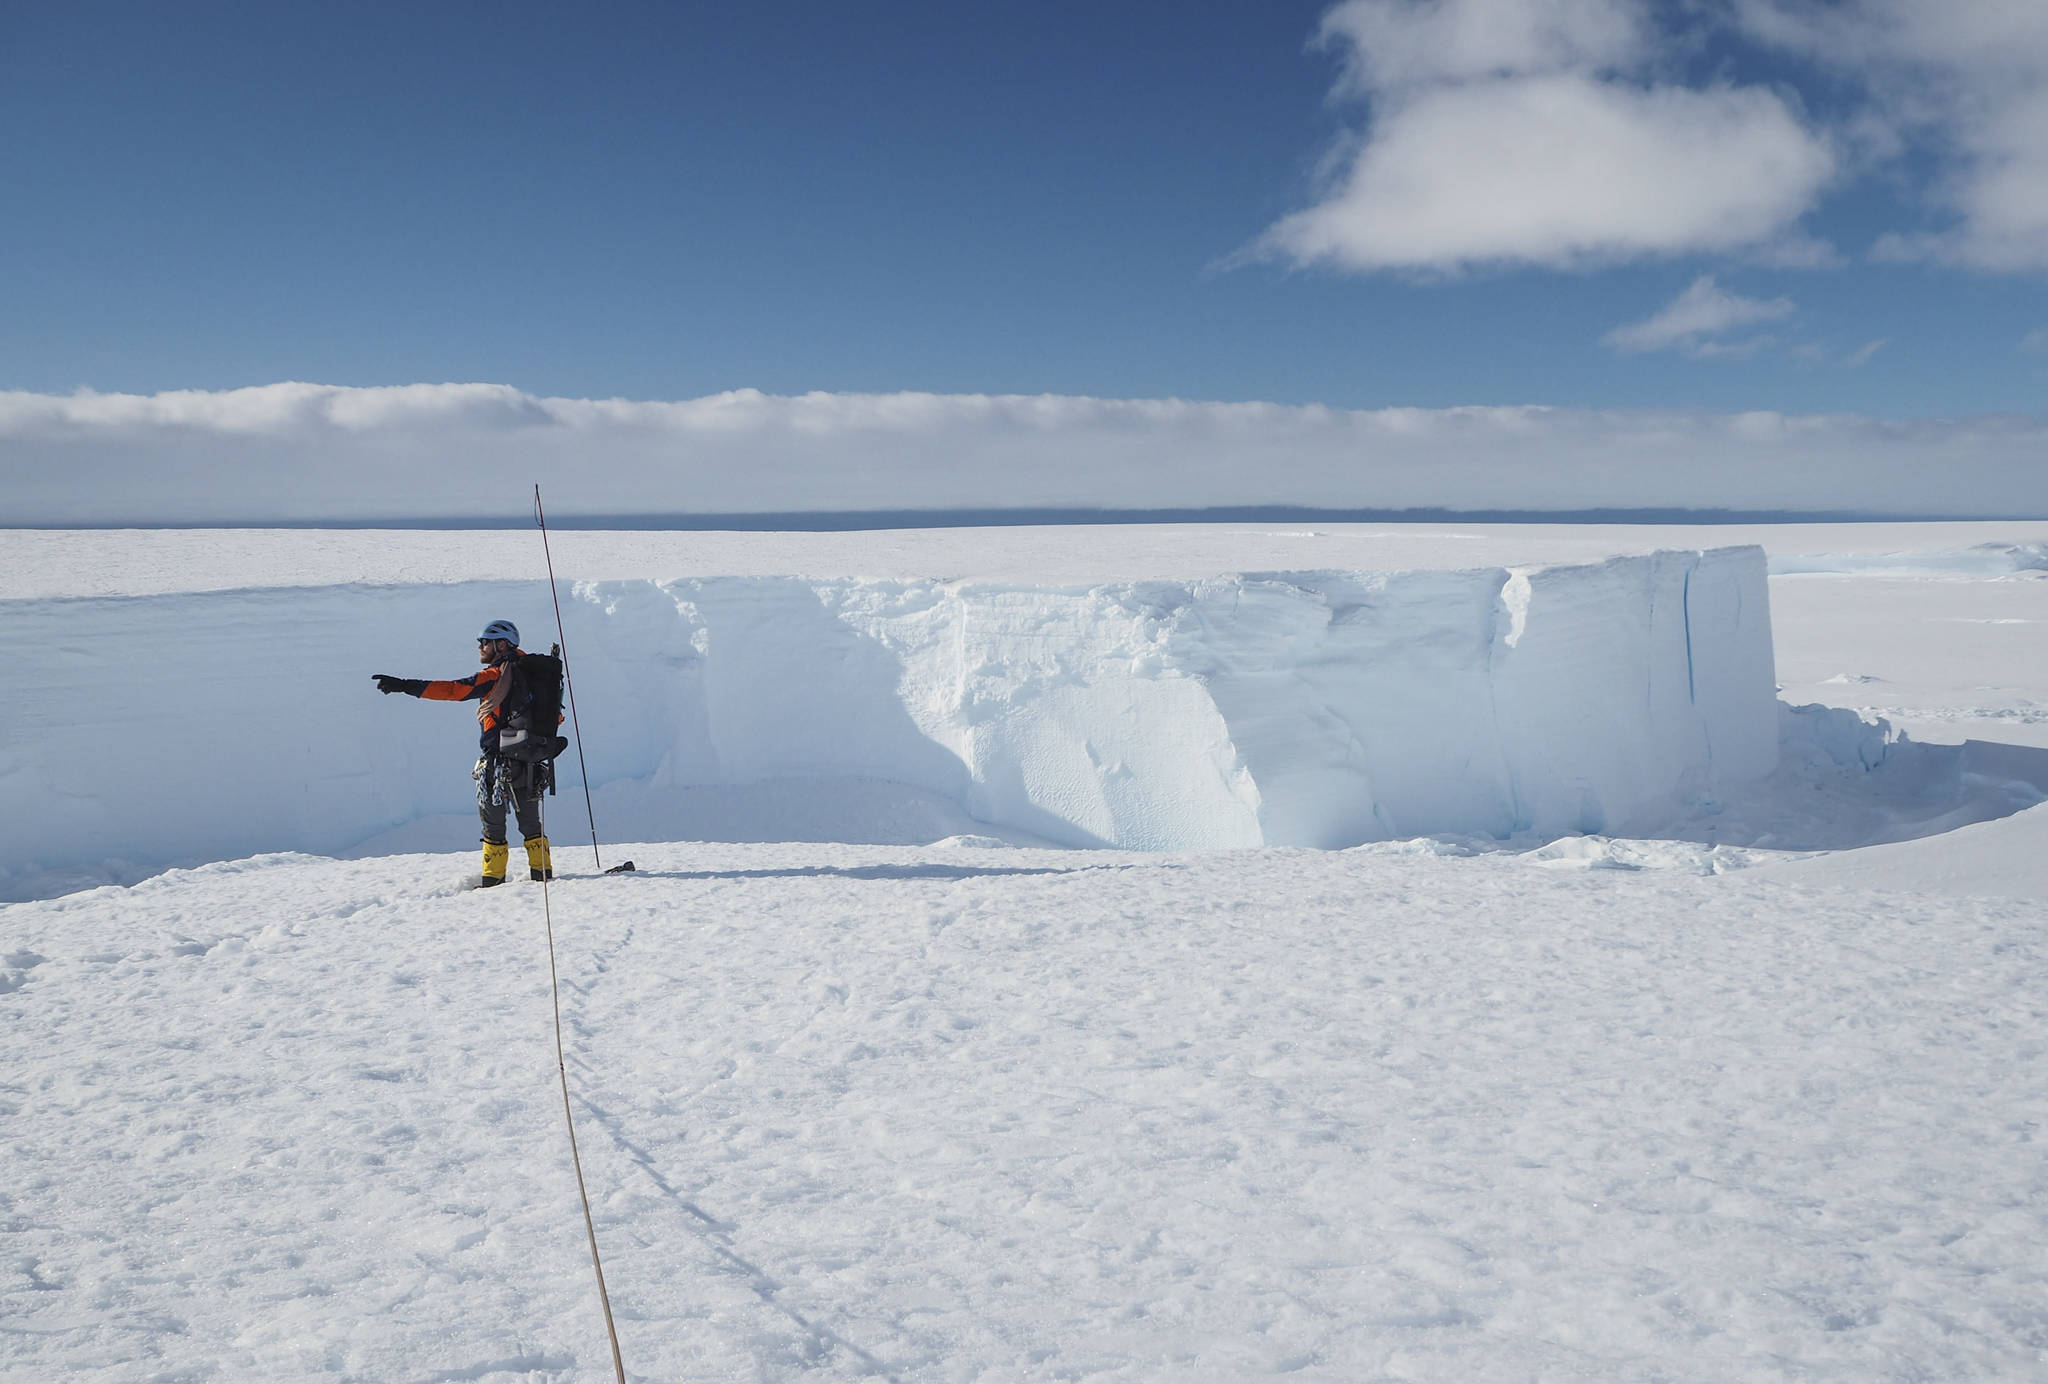 In this handout photo provided by British Antarctic Survey, field guide Andy Hood is seen at the Brunt ice shelf in Antarctica in January 2020. Antarctica remains the only continent without COVID-19 and now in Sept. 2020, as nearly 1,000 scientists and others who wintered over on the ice are seeing the sun for the first time in months, a global effort wants to make sure incoming colleagues don't bring the virus with them. (Robert Taylor/British Antarctic Survey via AP)